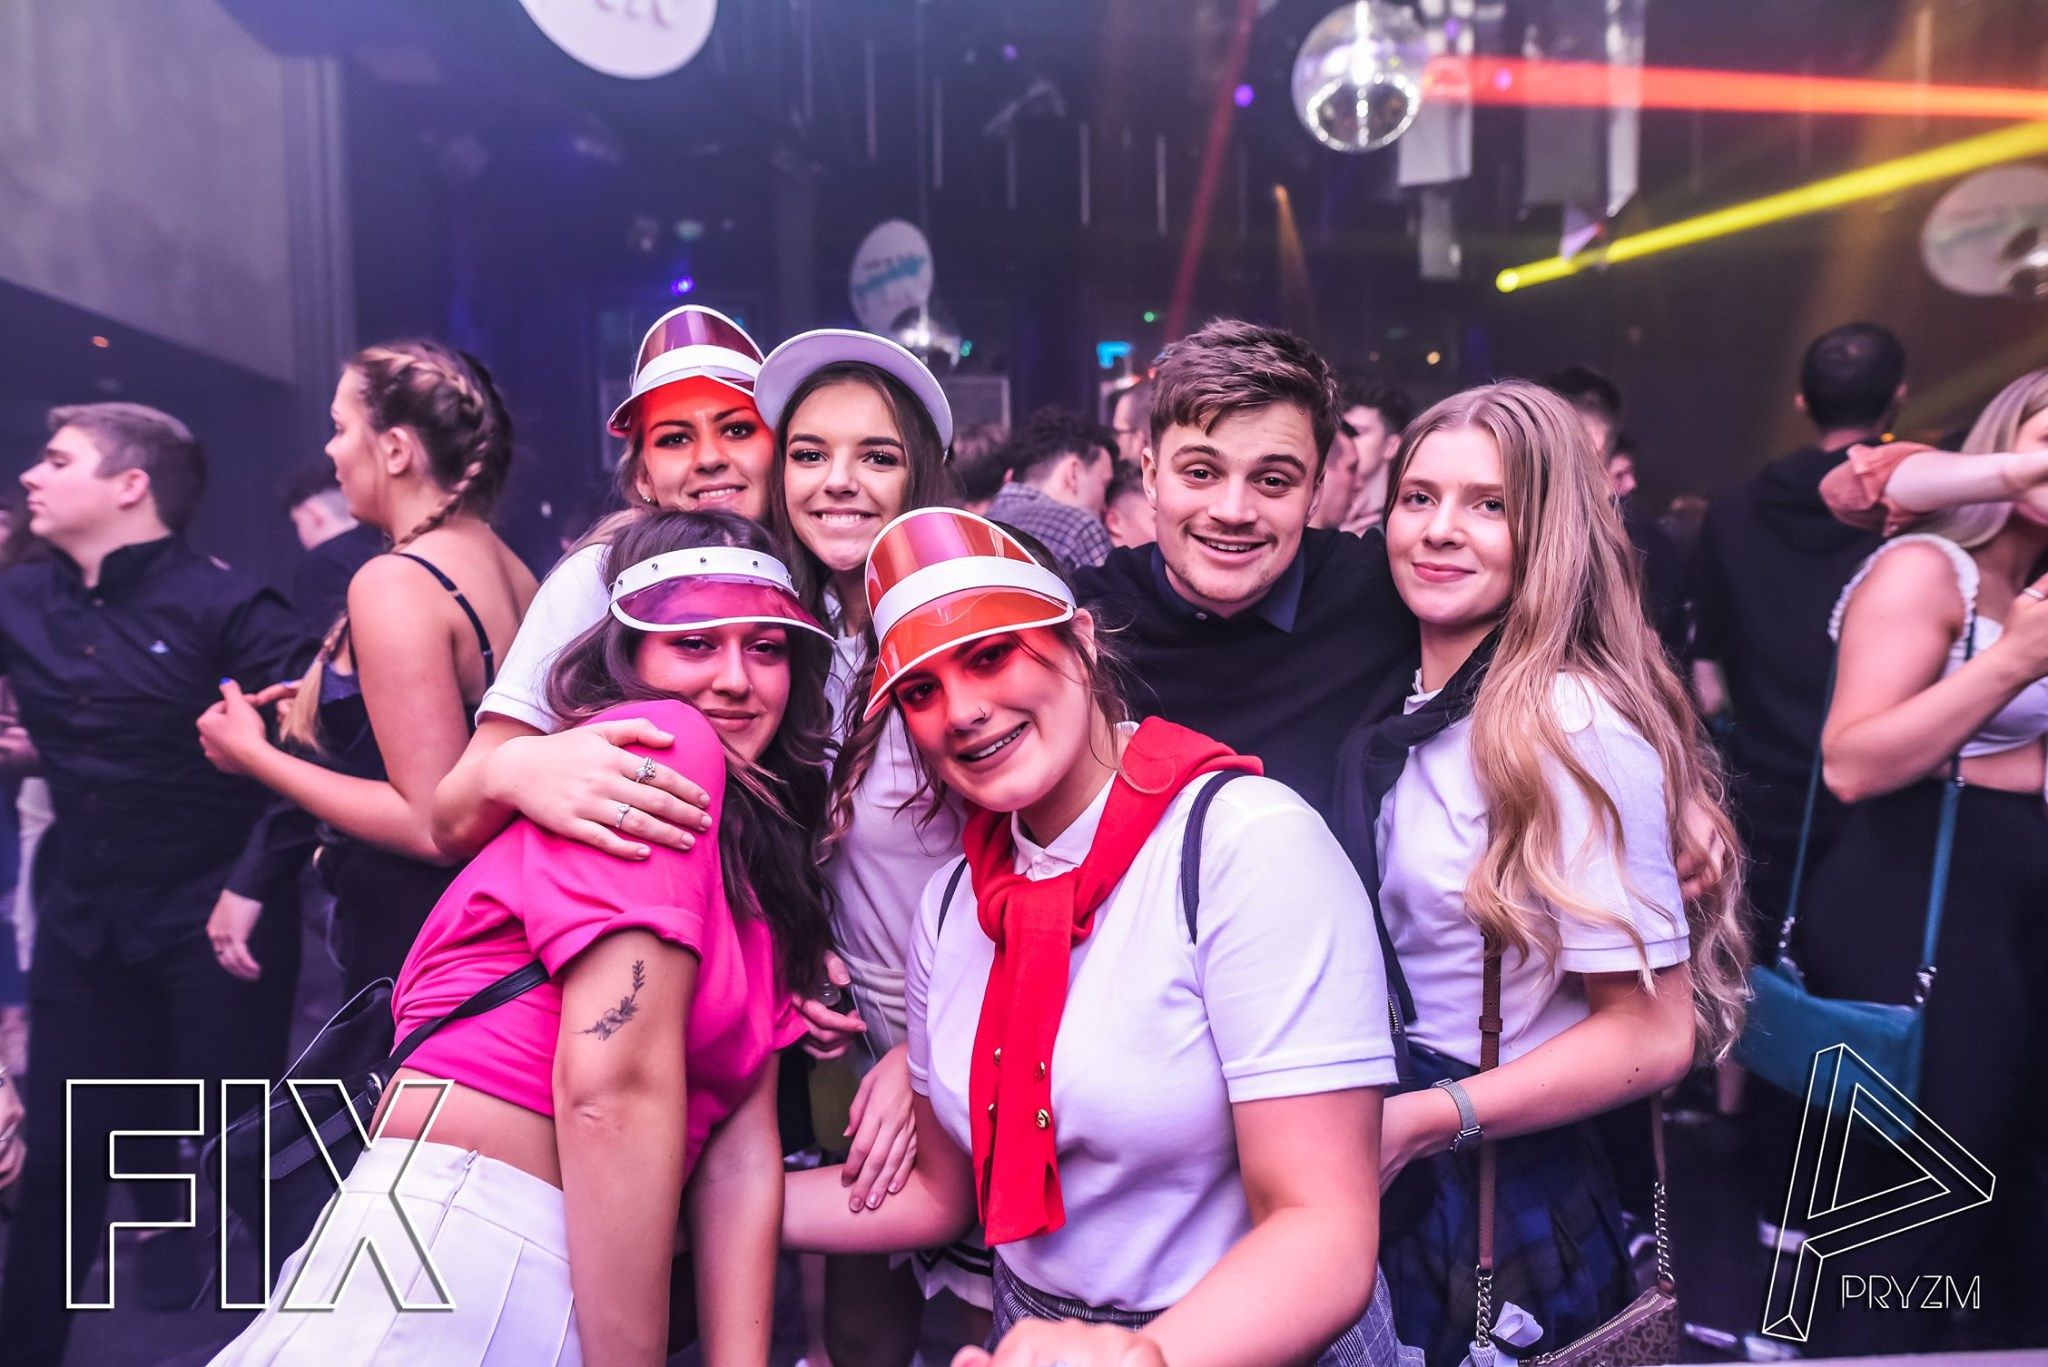 Image may contain: People, Leisure Activities, Accessories, Accessory, Sunglasses, Night Club, Club, Party, Night Life, Human, Person